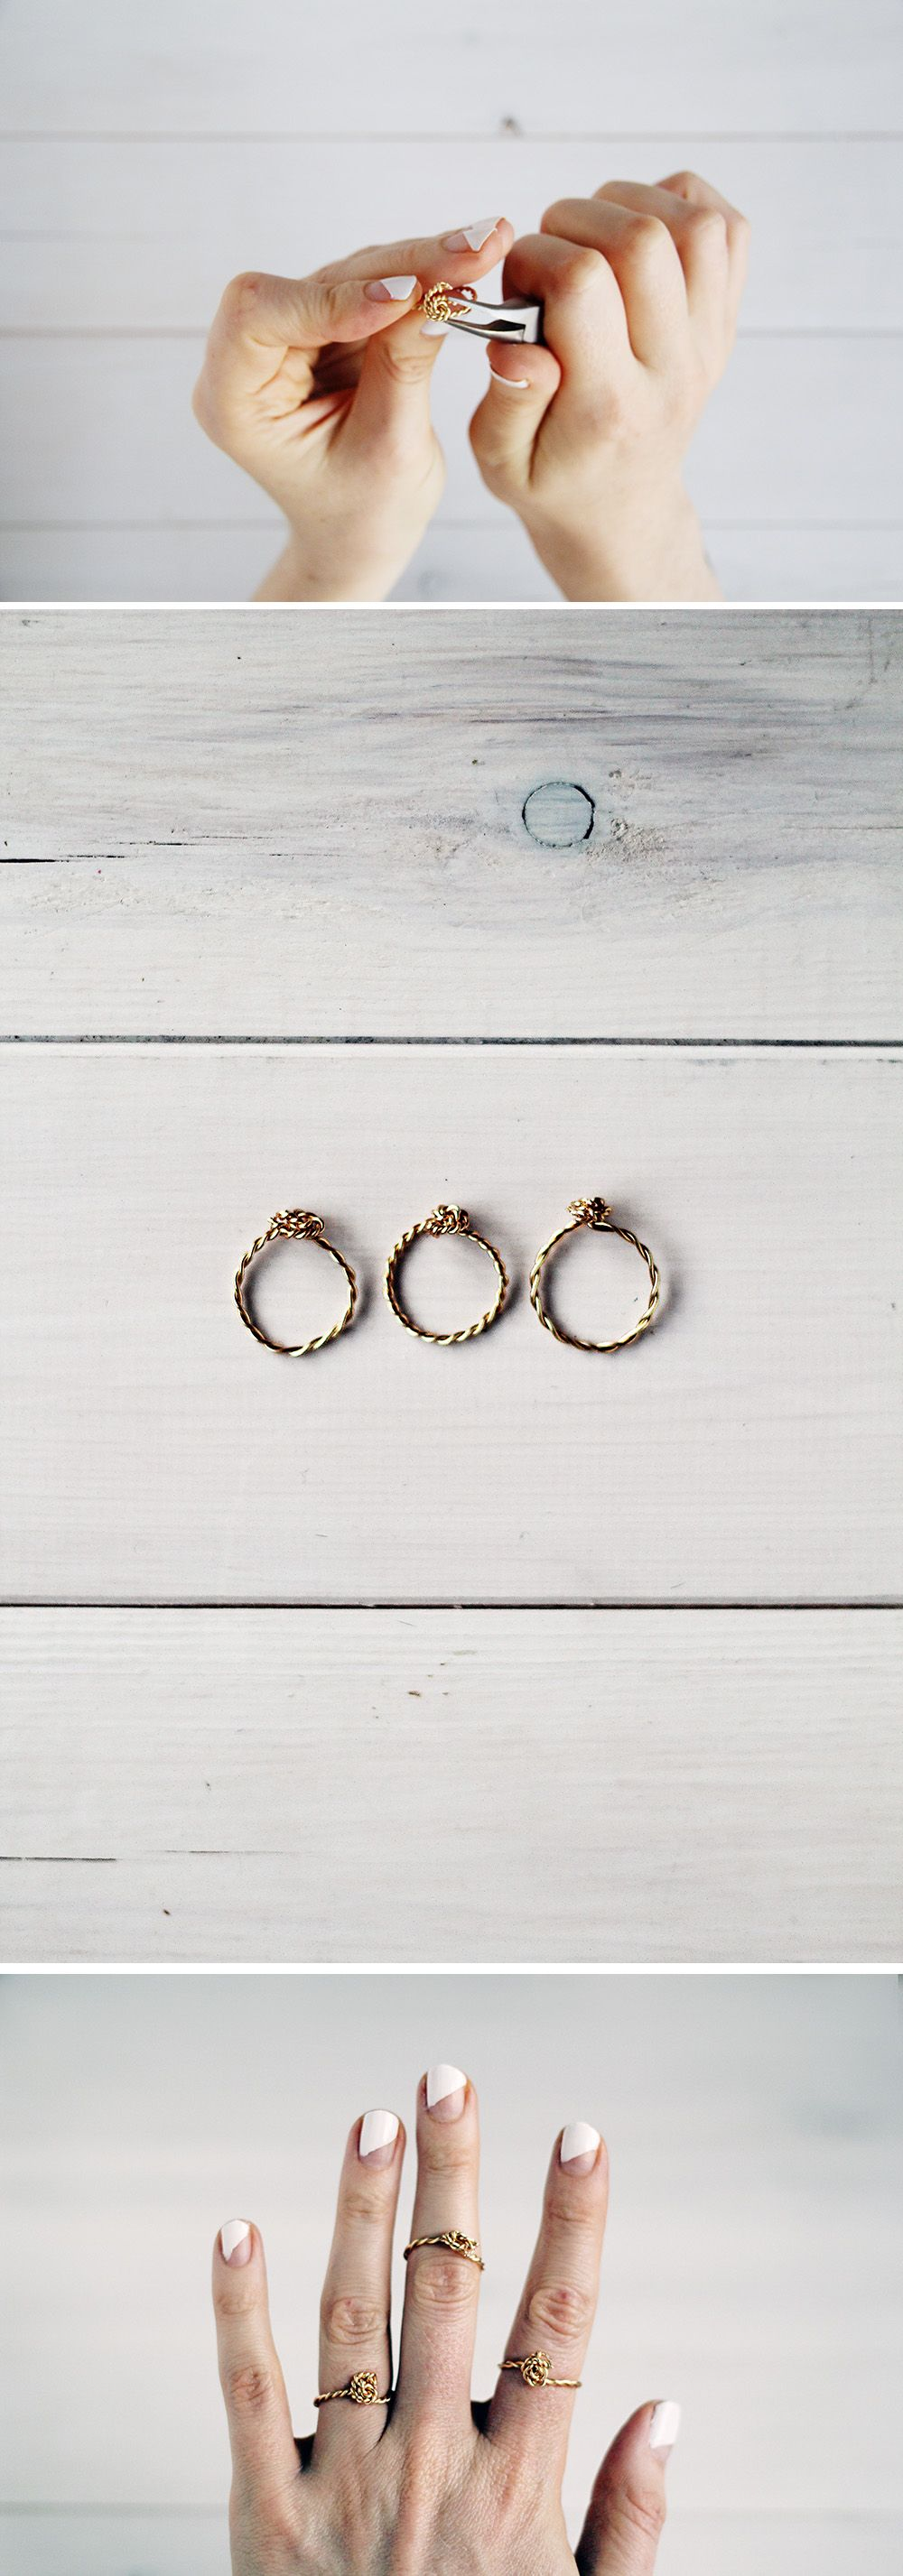 DIY-Twisted-Wire-Rings-tutorials-Fall-For-DIY.jpg 1.000×2.854 piksel